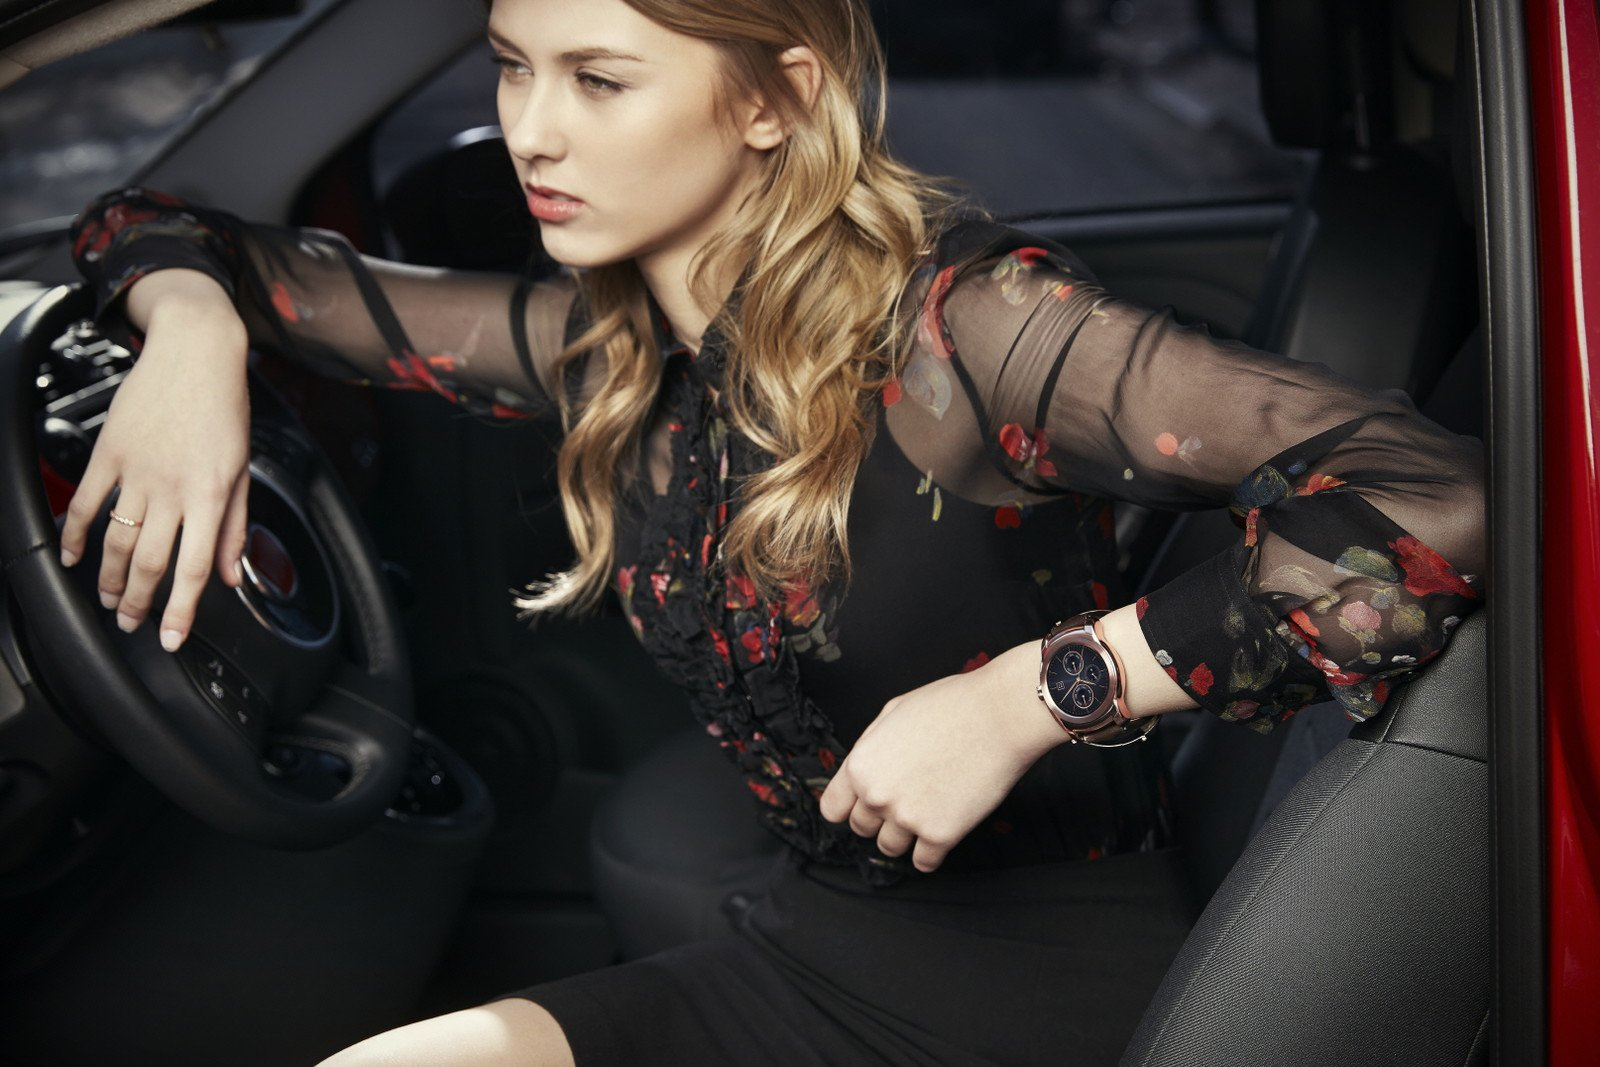 LG Watch Urbane Goes Official